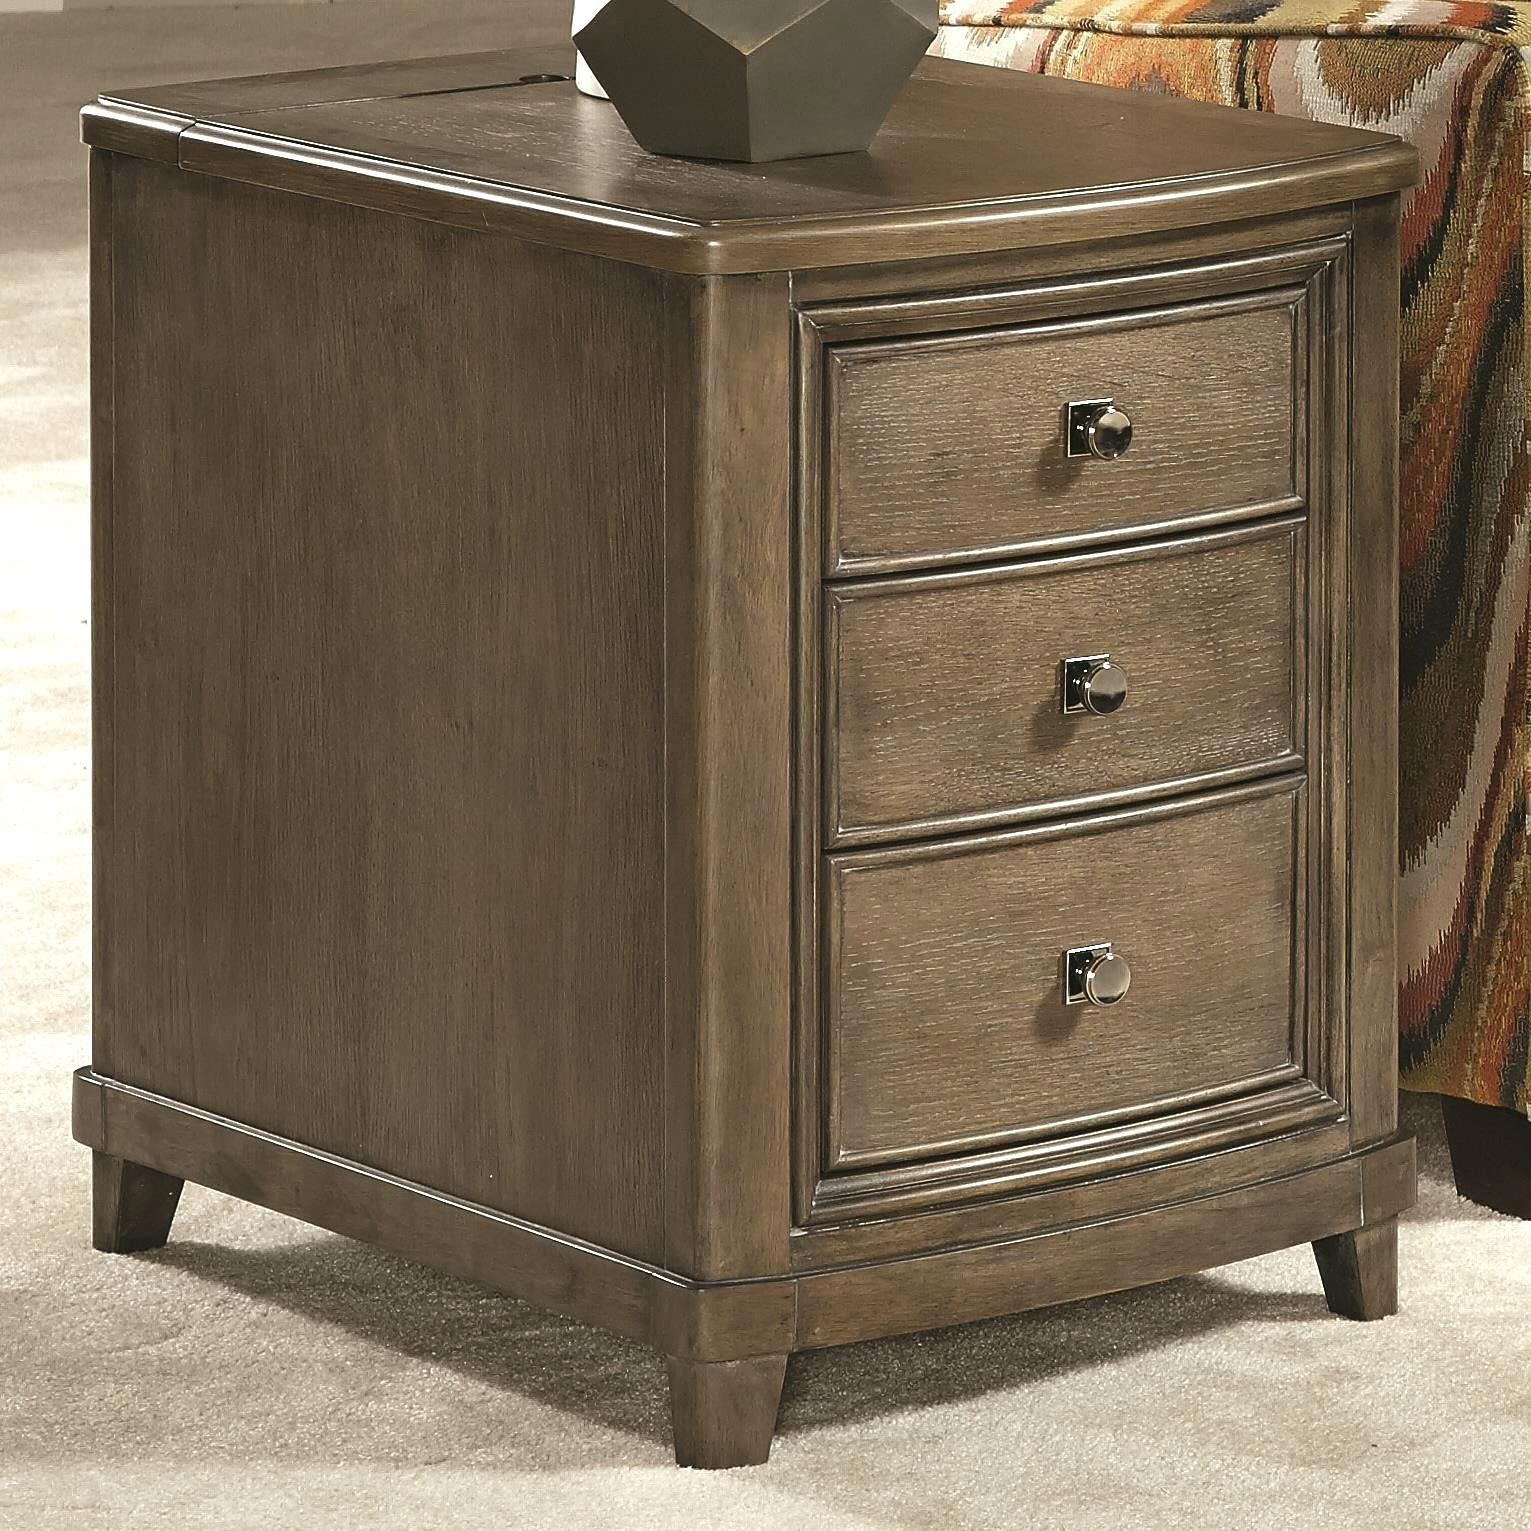 elegant reclaimed drawer coffee table end target killswitch drew park studio with drawers and electric charging flip top wood hafley accent related post high patio set ethan allen